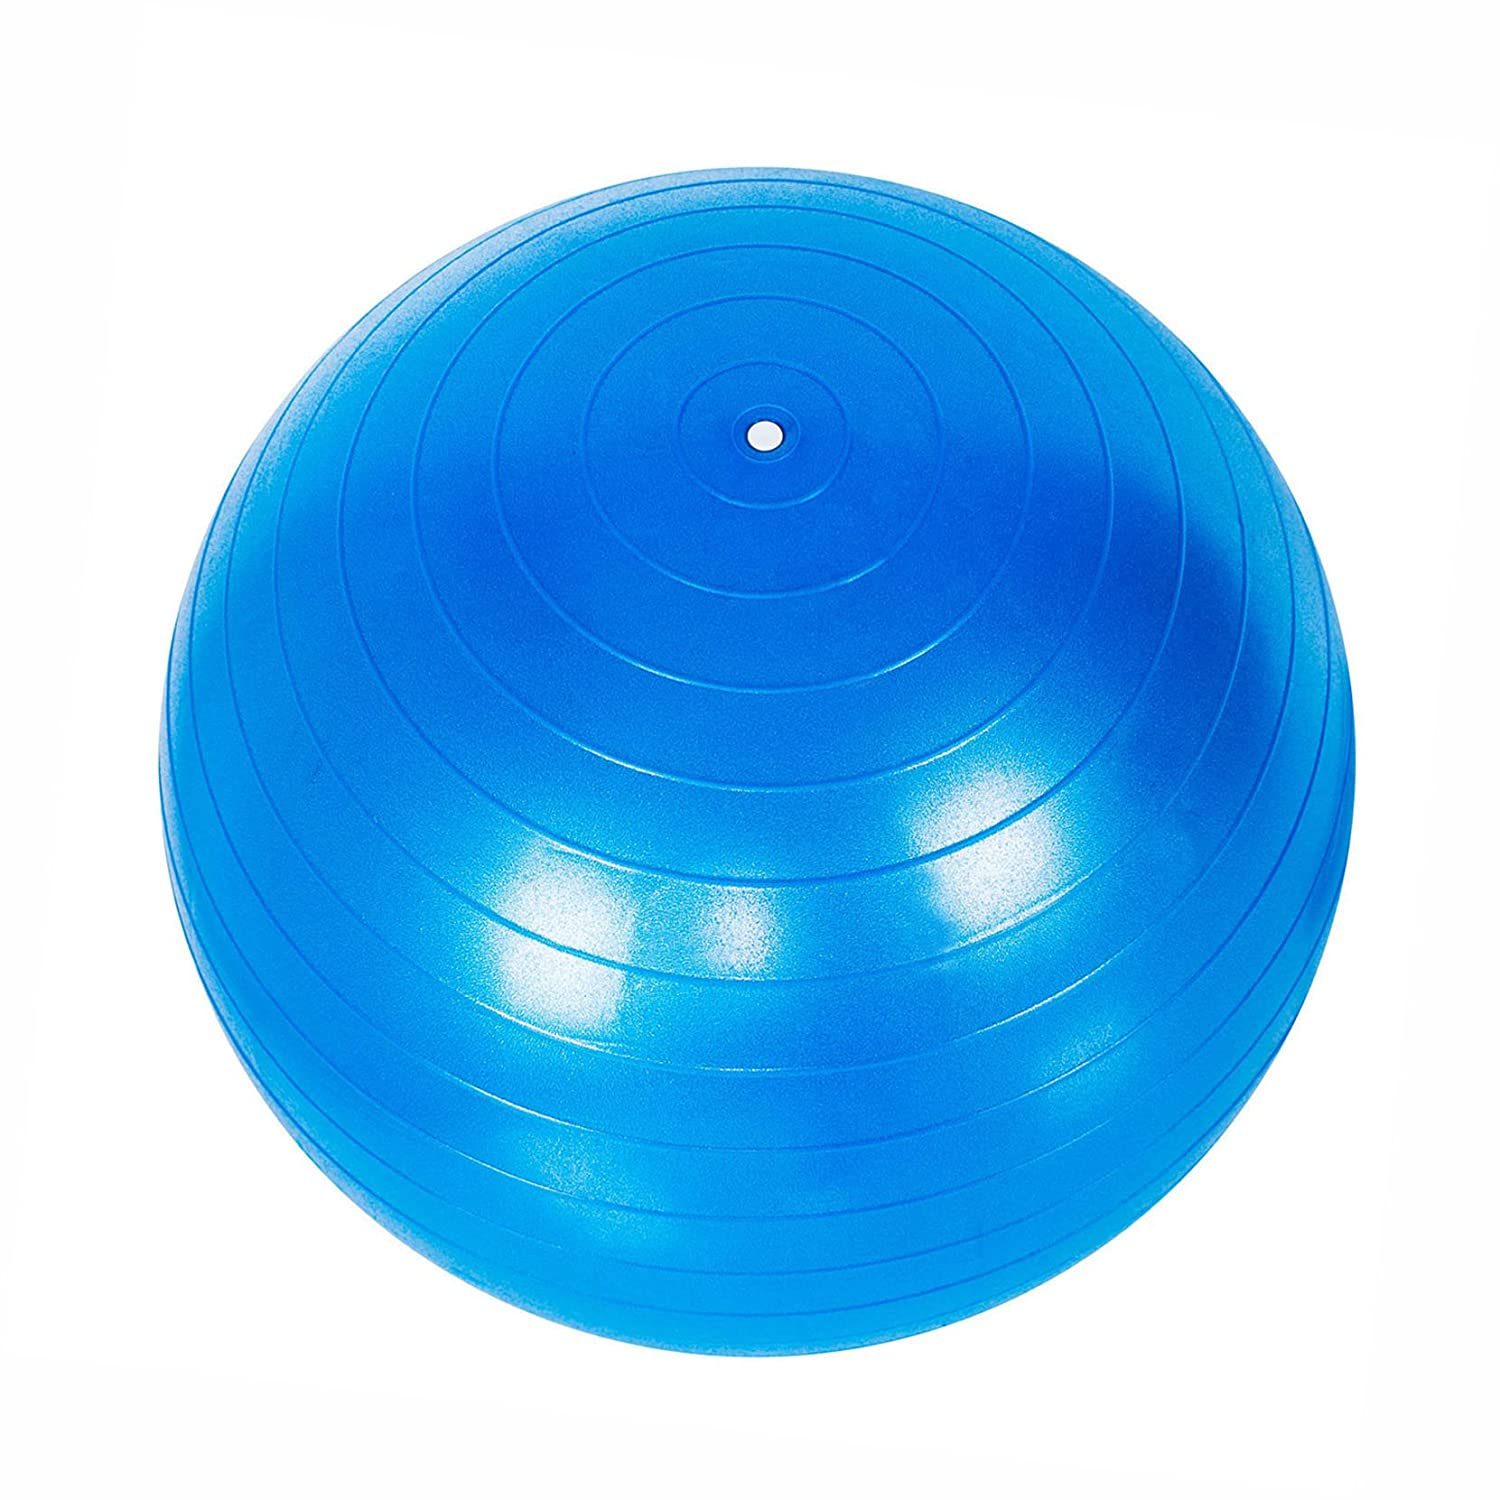 Asense Green Total Body Stability Balance Exercise Yoga Fitness Ball